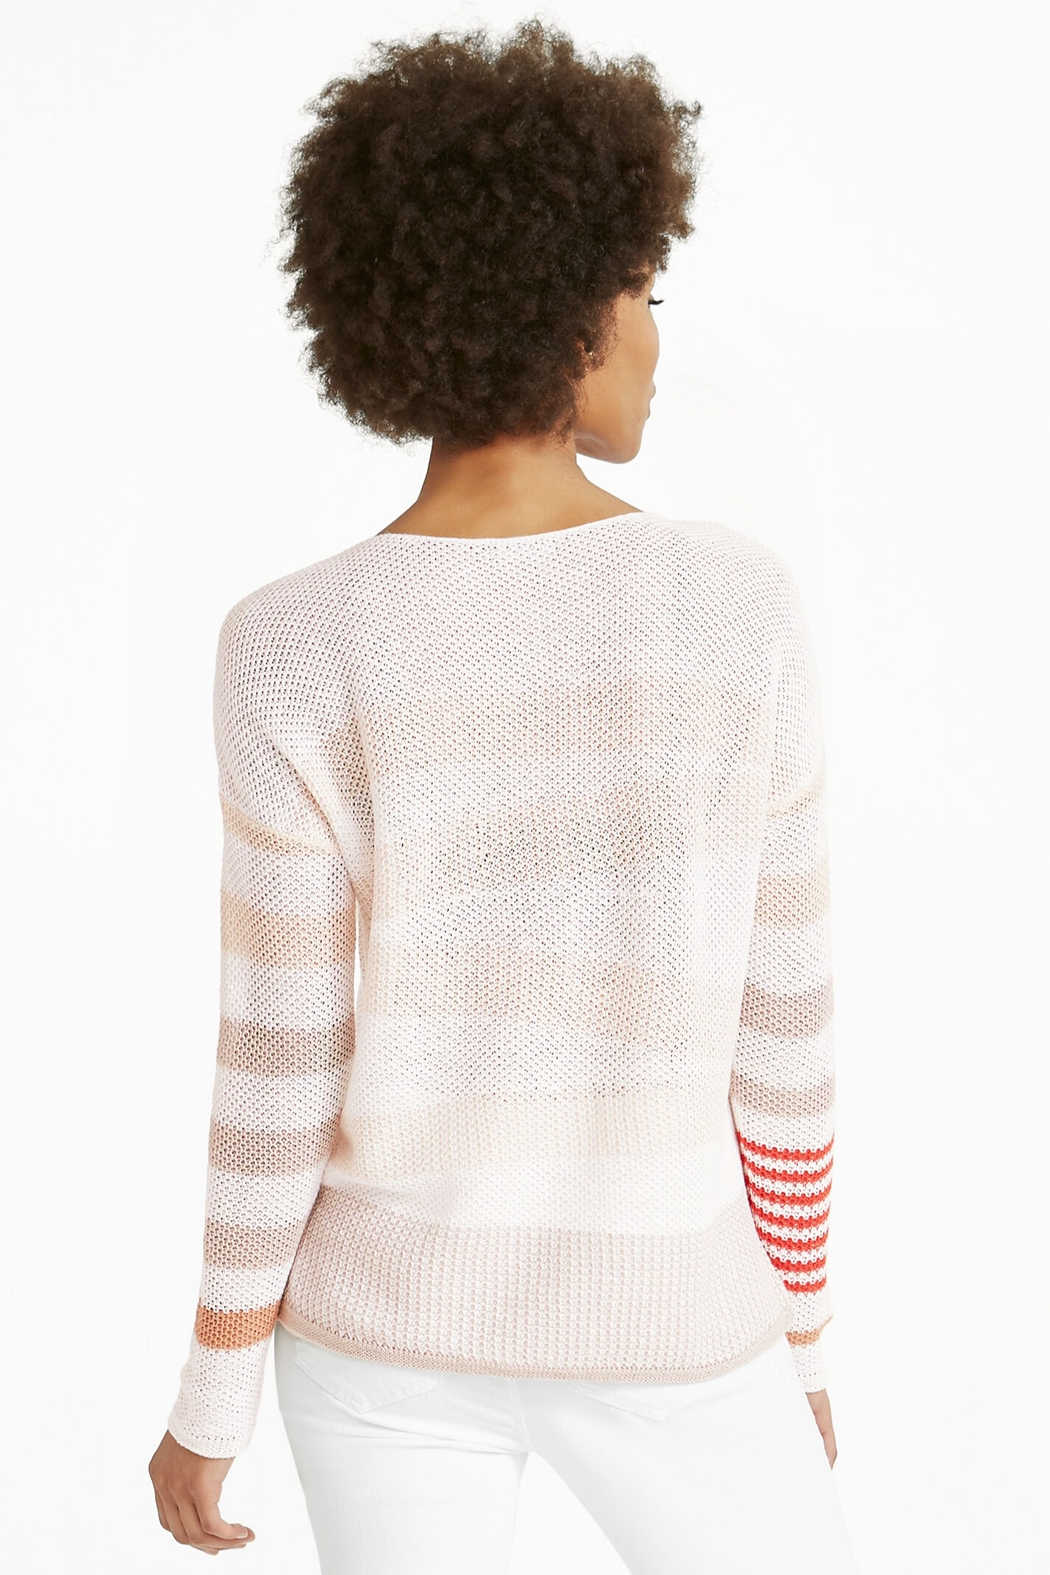 Nic + Zoe Cannon Sweater - Front Full Image